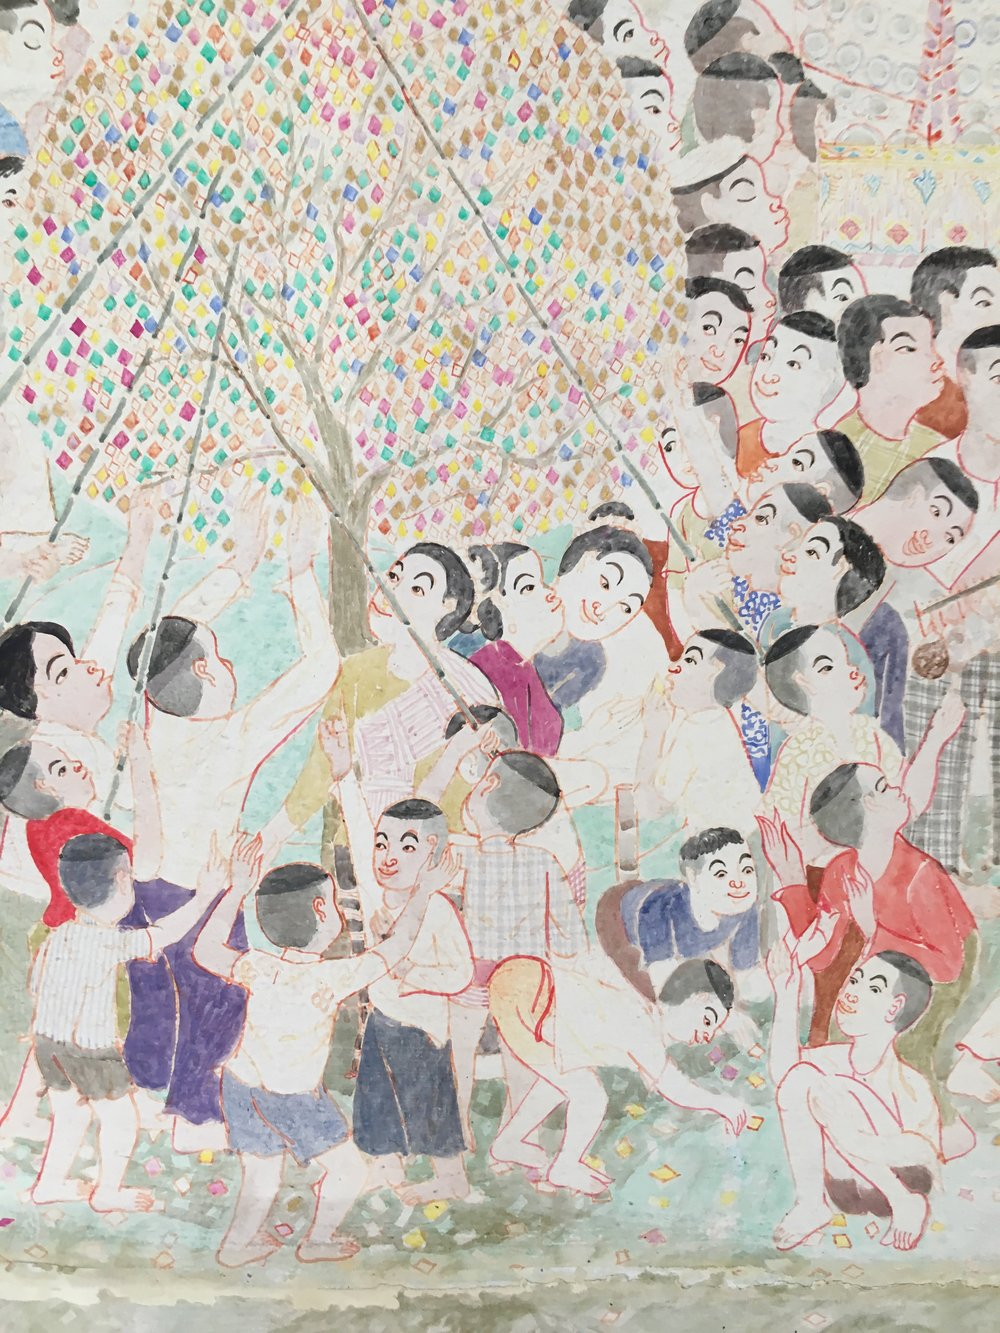 This playful mural by the artist Pornchai Jaima shows people worshipping a sacred tree